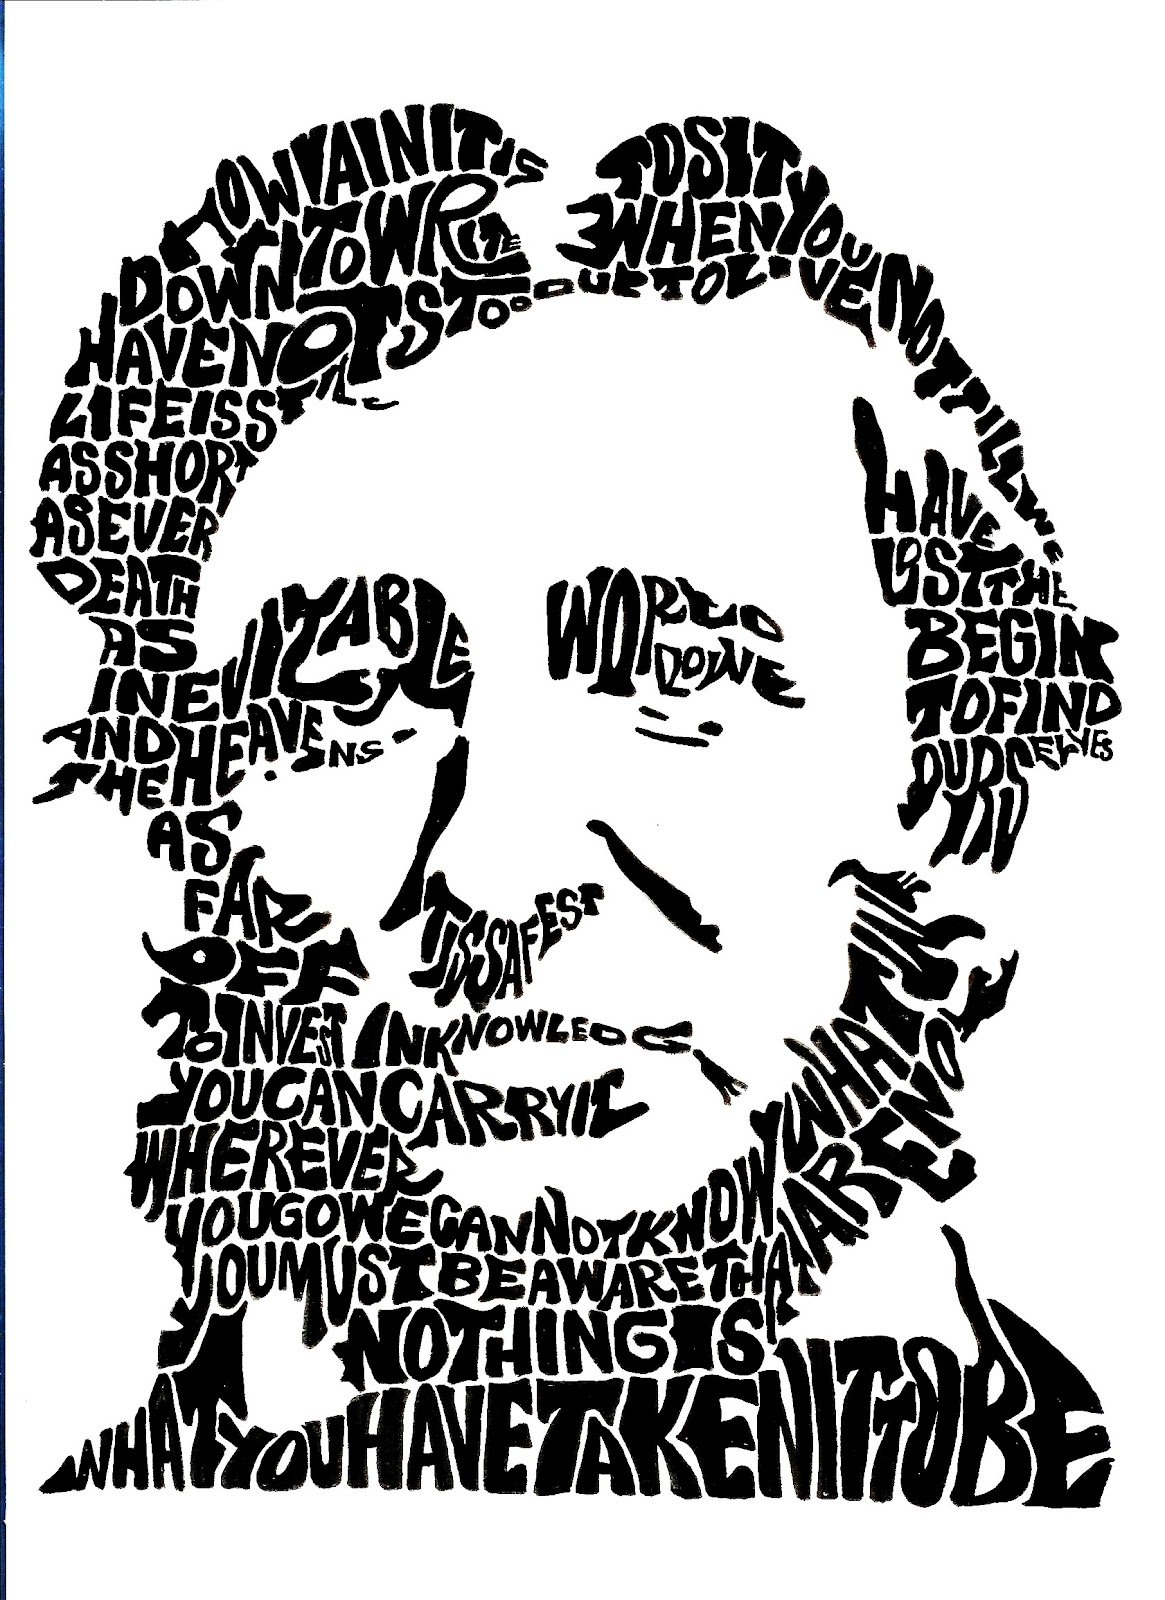 henry david thoreau civil disobedience quotes quotesgram follow us